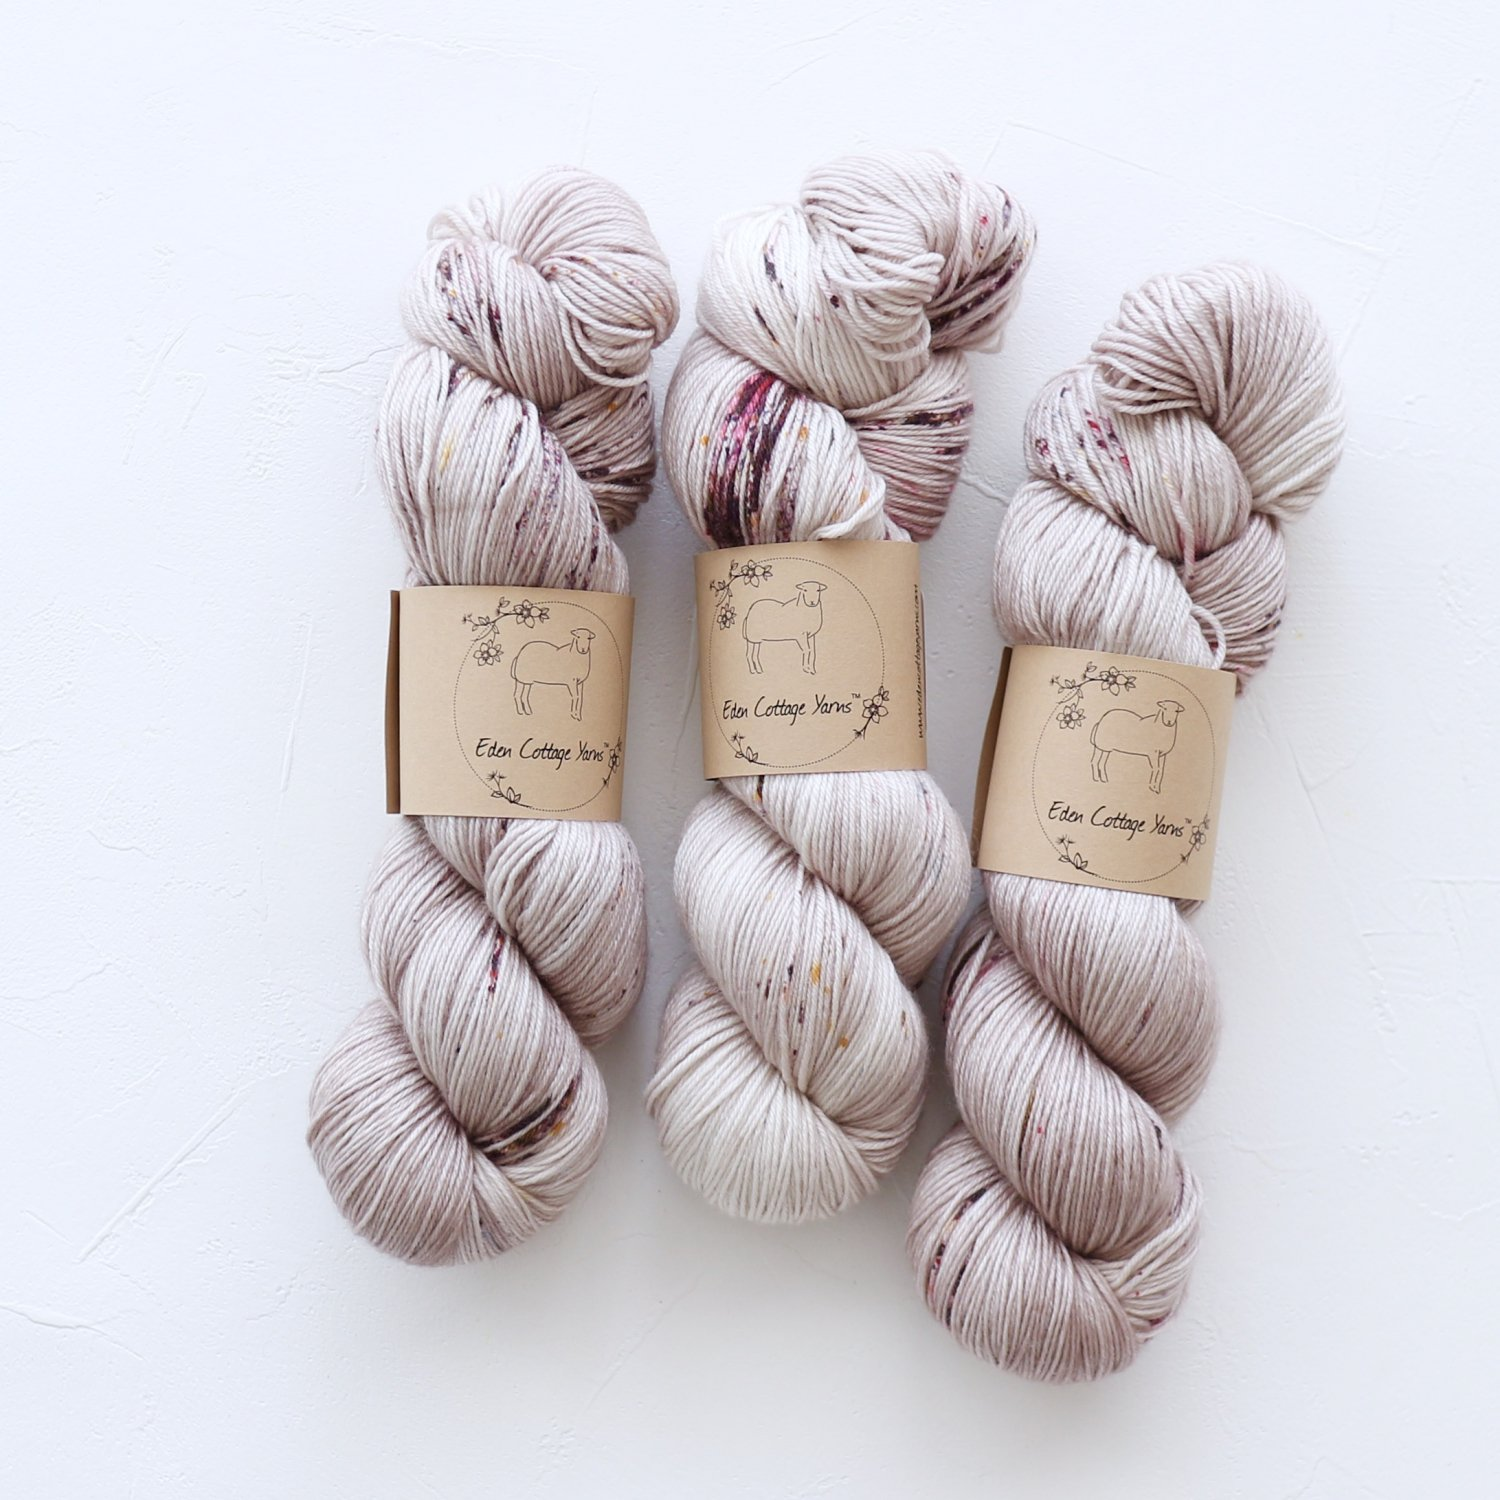 【Eden Cottage Yarns】<br>Pendle 4ply<br>Wren's Egg